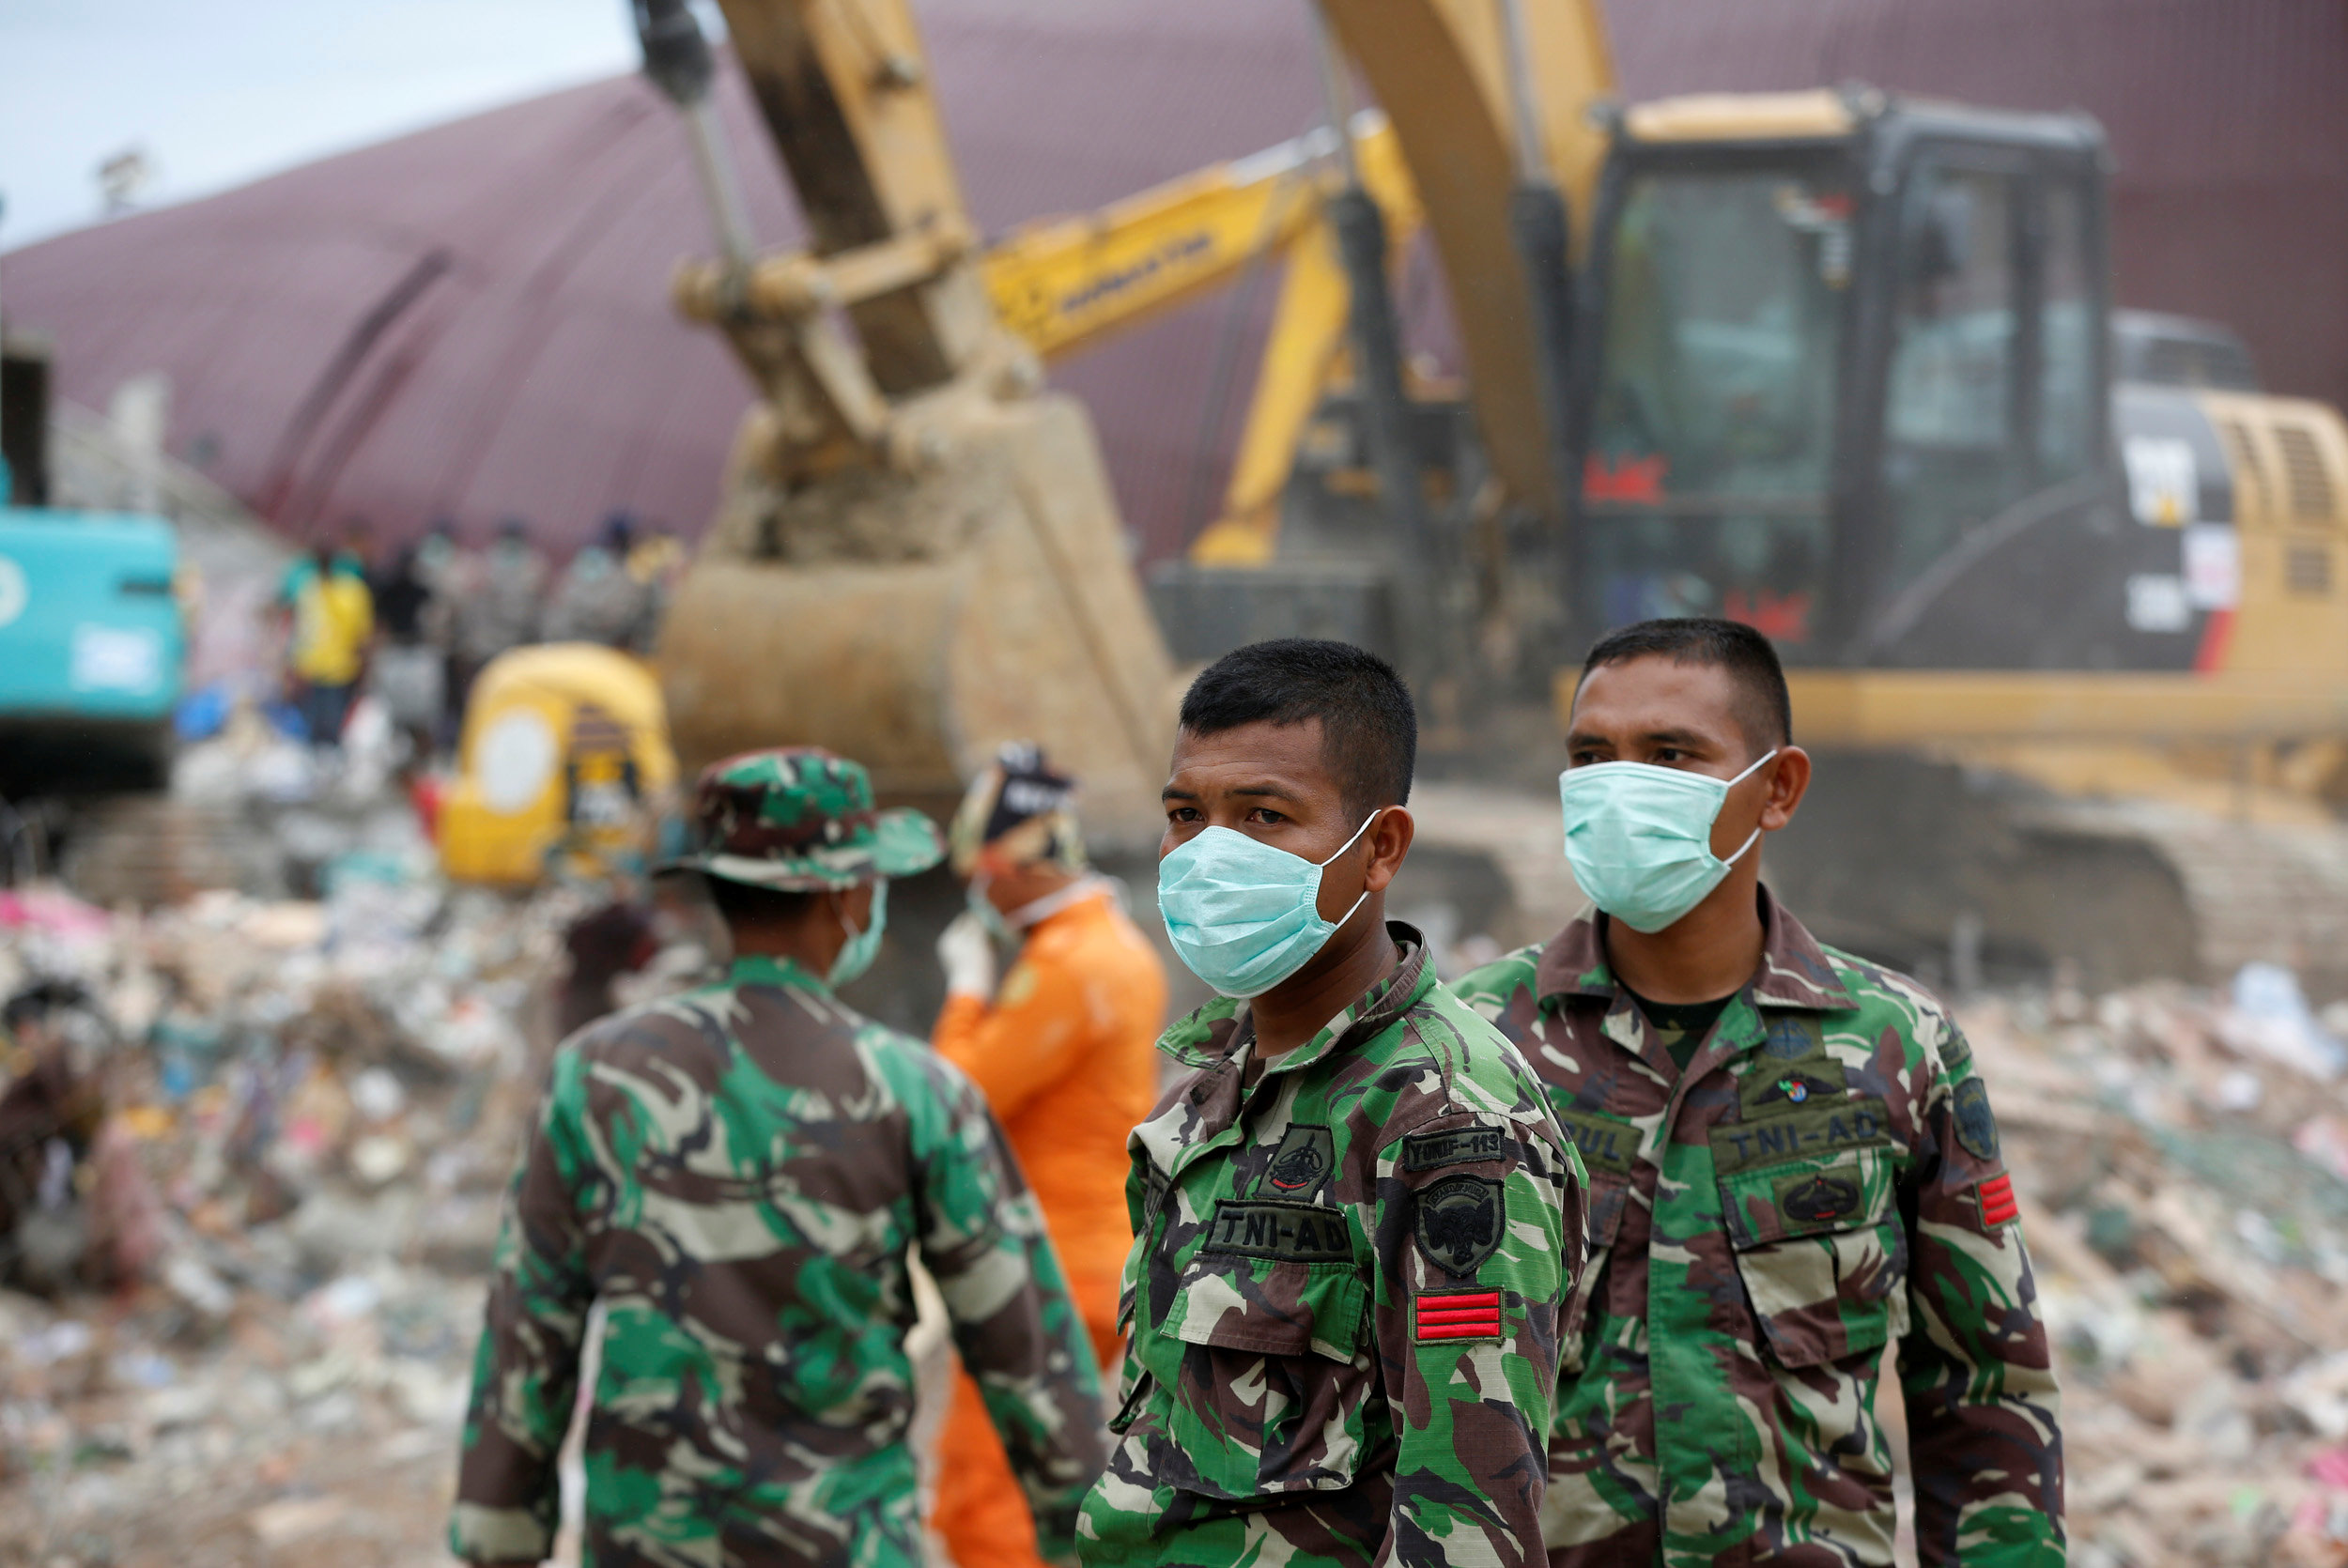 Indonesian soldiers help to secure an area where rescue and salvage operations take place at a collapsed building following this week's strong earthquake in Meureudu, Pidie Jaya, Aceh province, Indonesia